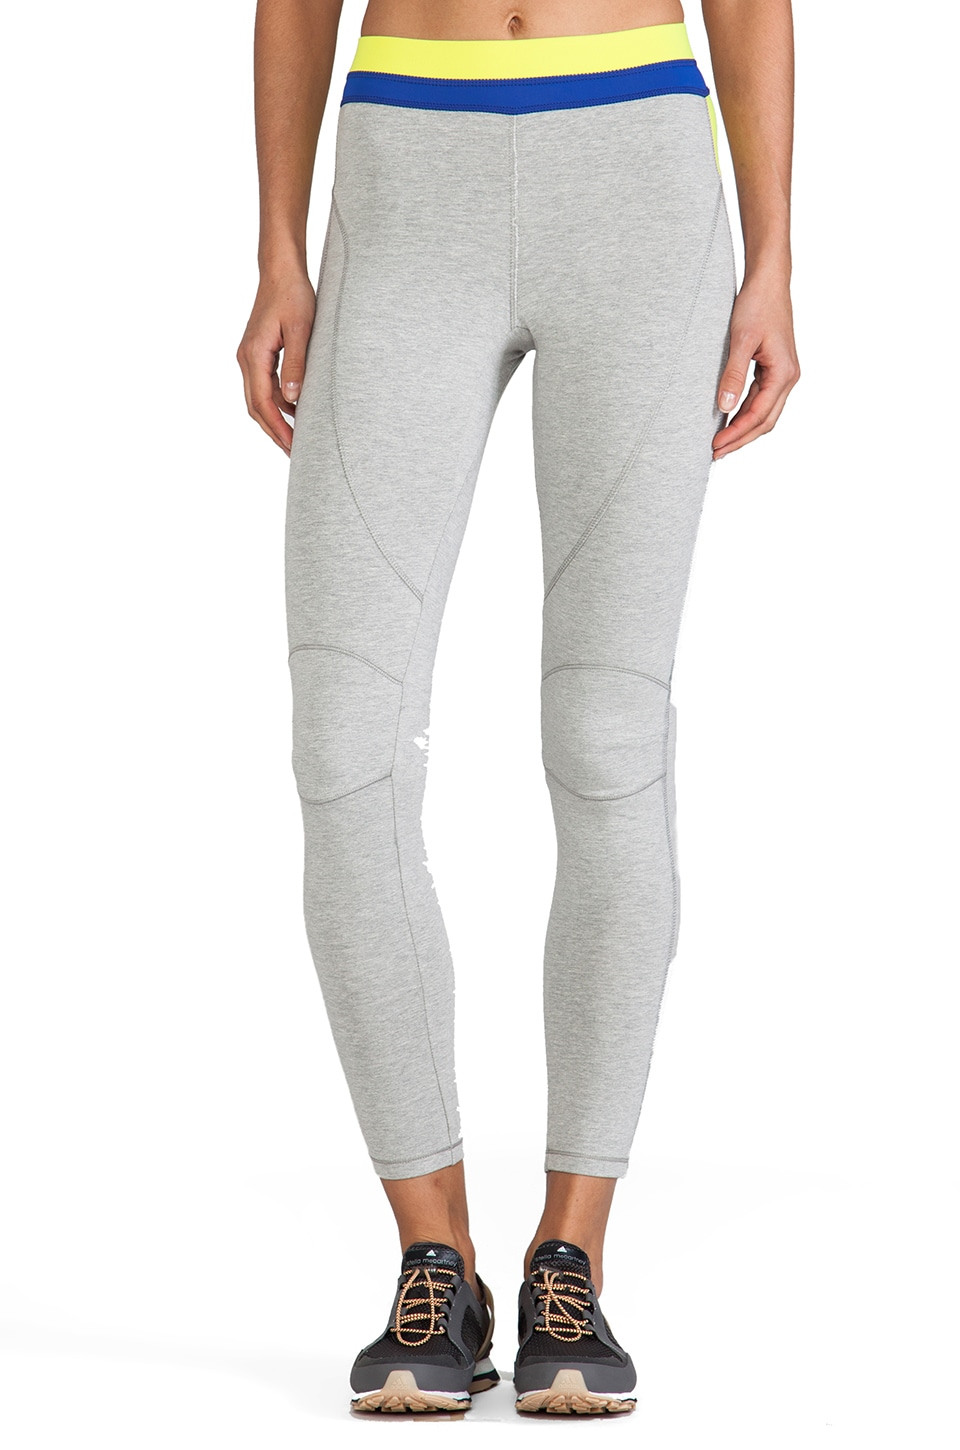 VPL Patella Long Legging in Heather Grey